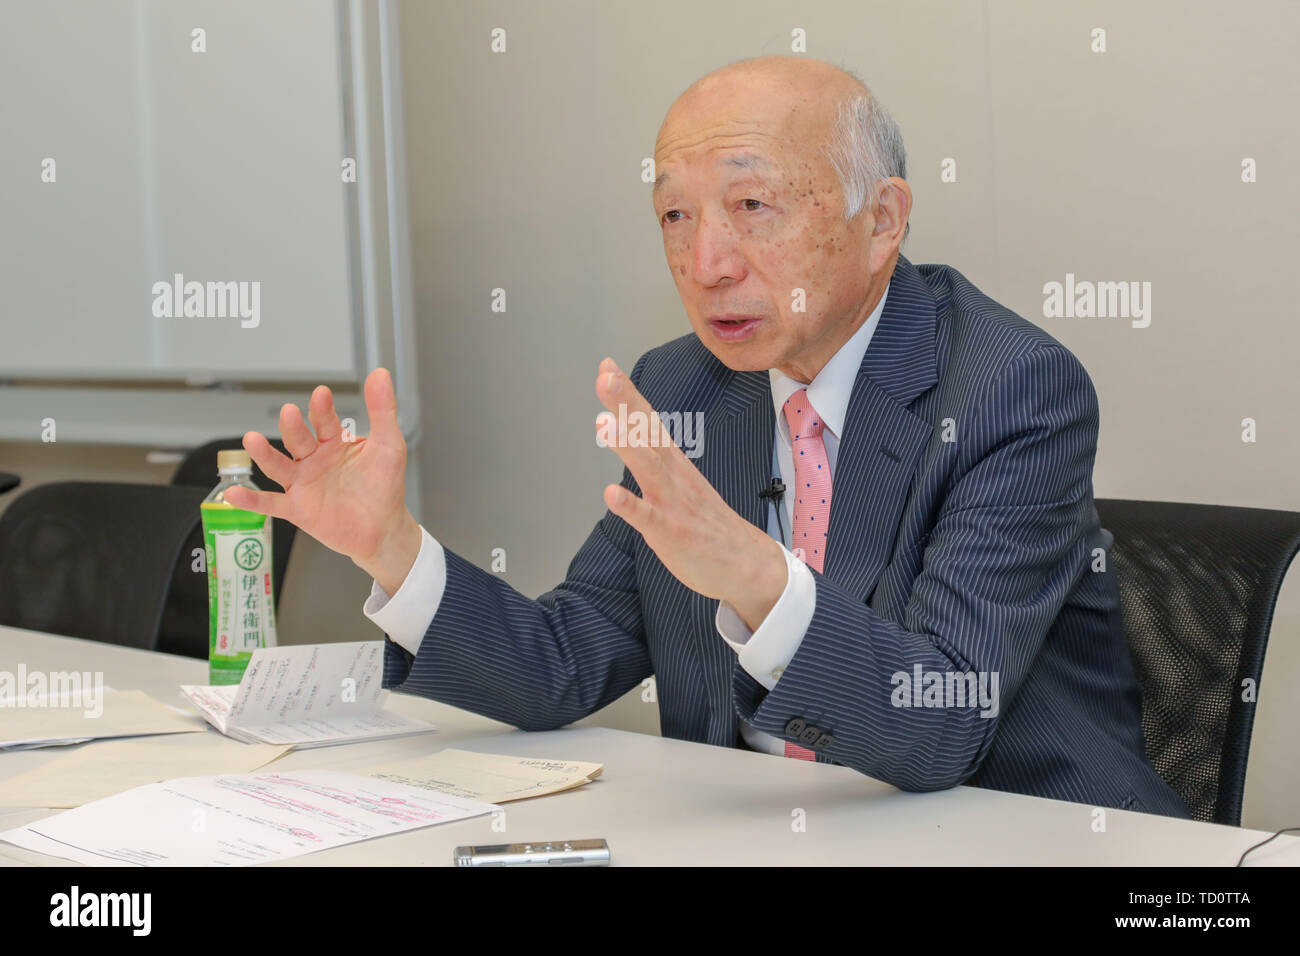 Tokyo, Japan. 6th June, 2019. Takakage Fujita, director general of a civil group dedicated to upholding and developing the well-known Murayama Statement, receives an interview with Xinhua in Tokyo, Japan, June 6, 2019. TO GO WITH:Interview: It is irresponsible of U.S. to wantonly wield tariff stick: Japanese expert Credit: Ma Caoran/Xinhua/Alamy Live News - Stock Image